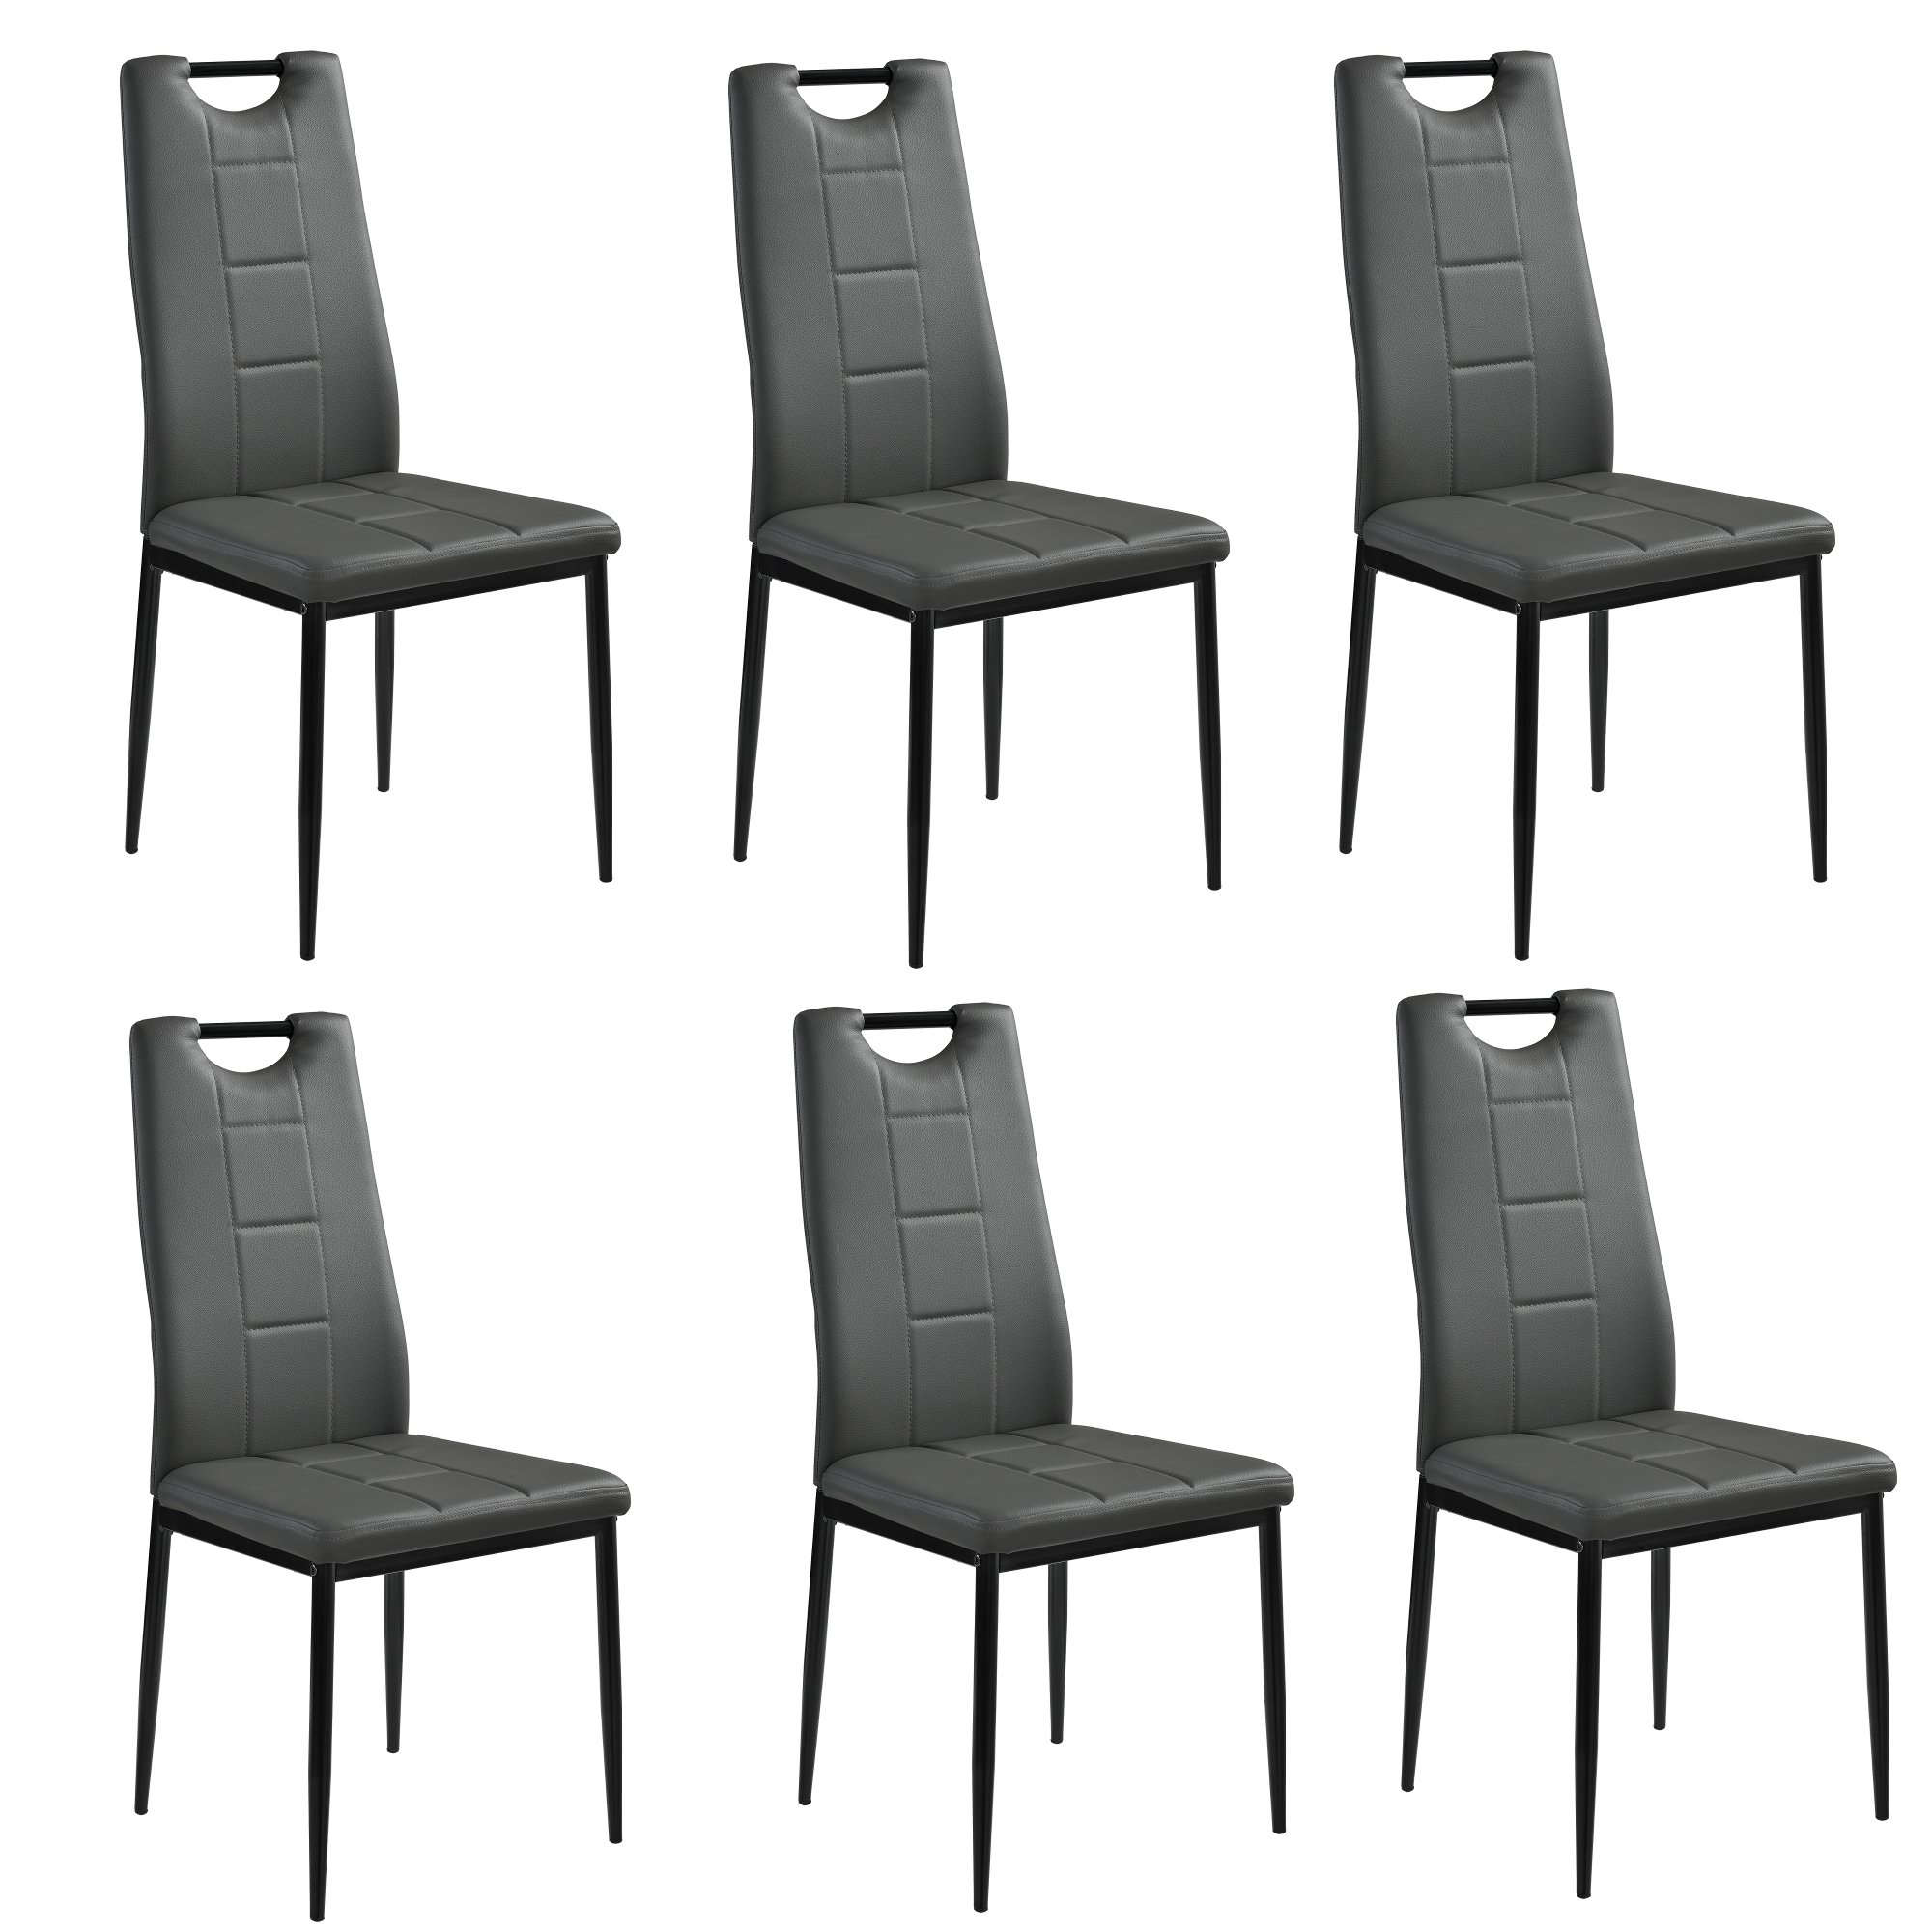 6x chaises gris chaise dossier haut salle manger similicuir. Black Bedroom Furniture Sets. Home Design Ideas